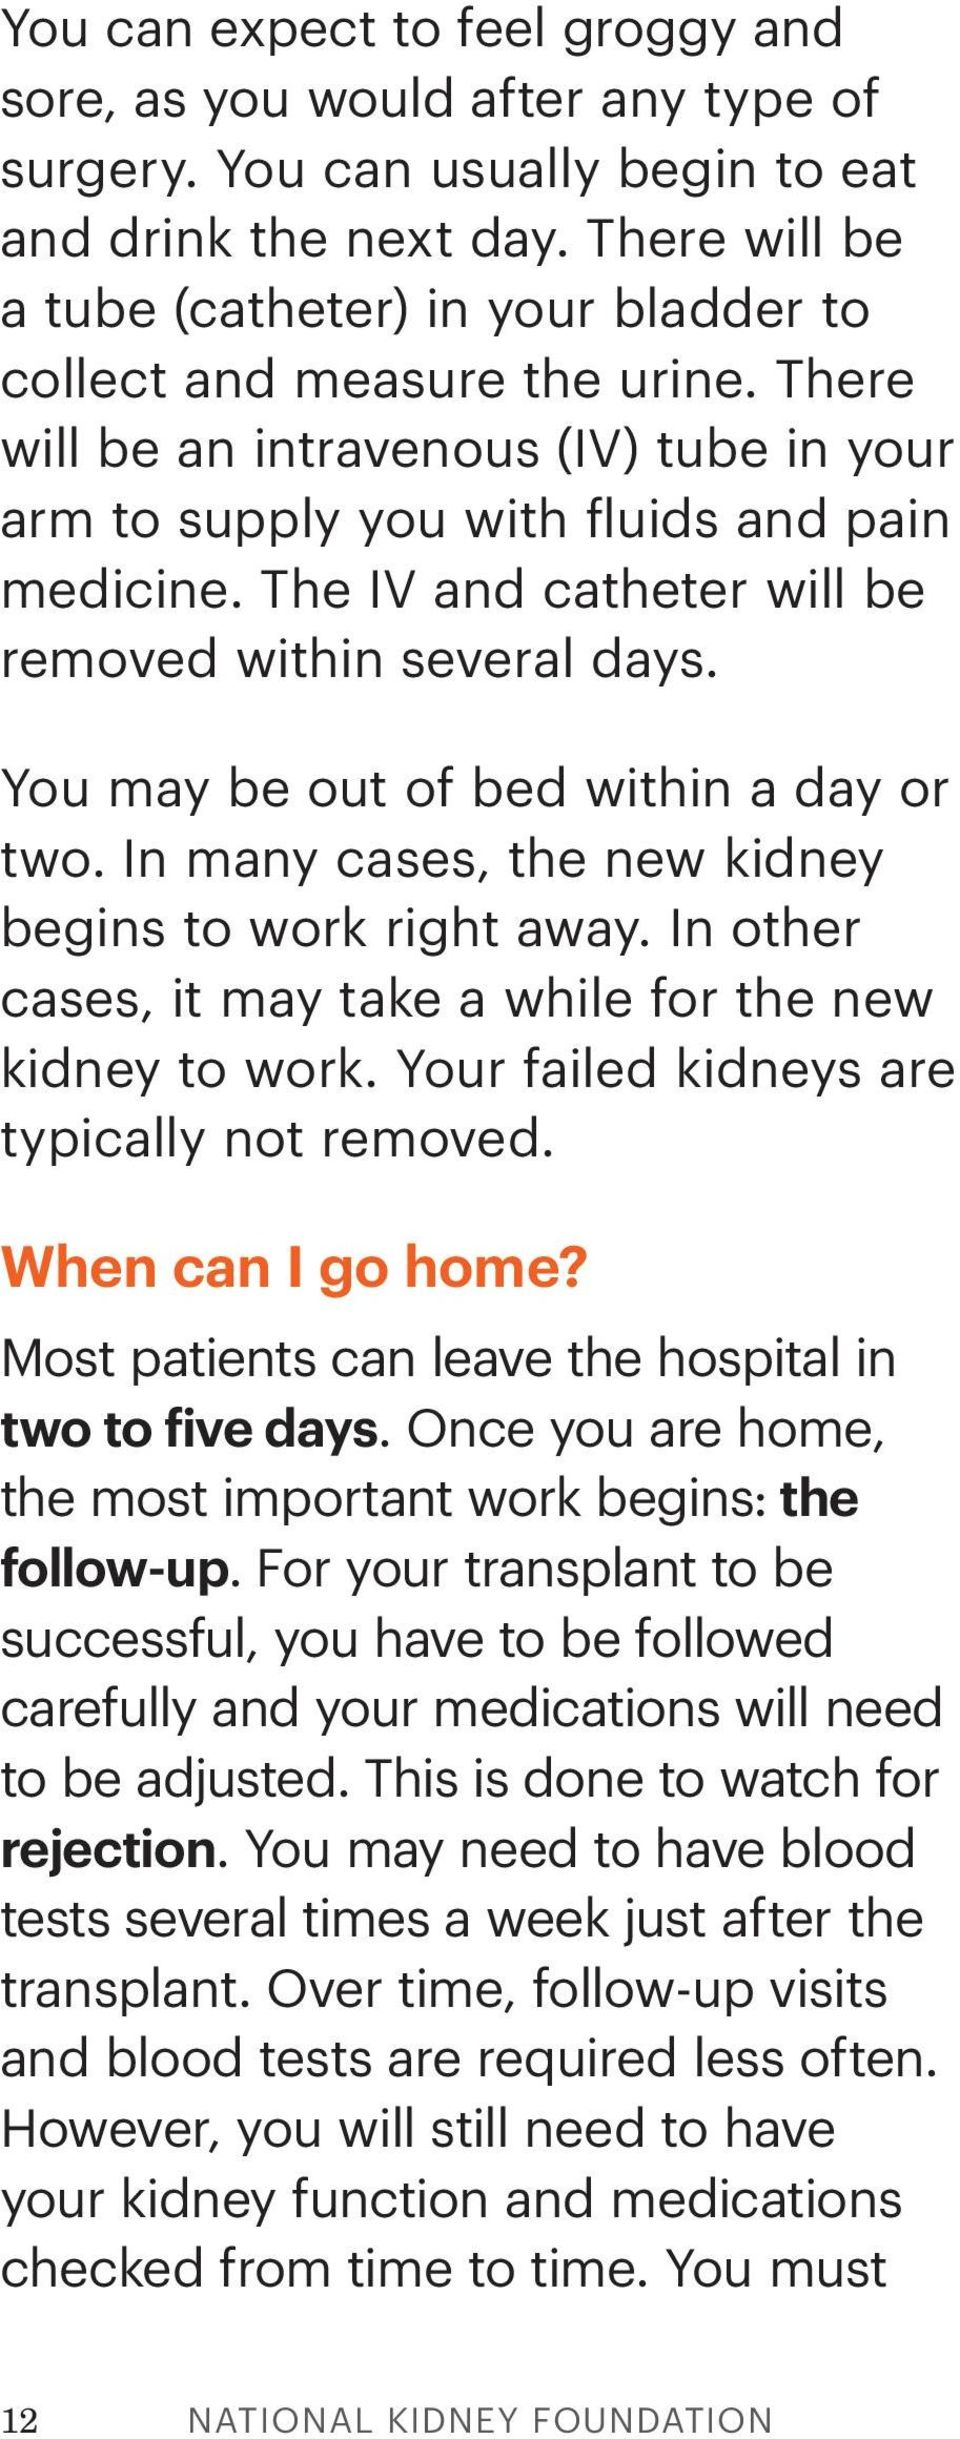 The IV and catheter will be removed within several days. You may be out of bed within a day or two. In many cases, the new kidney begins to work right away.